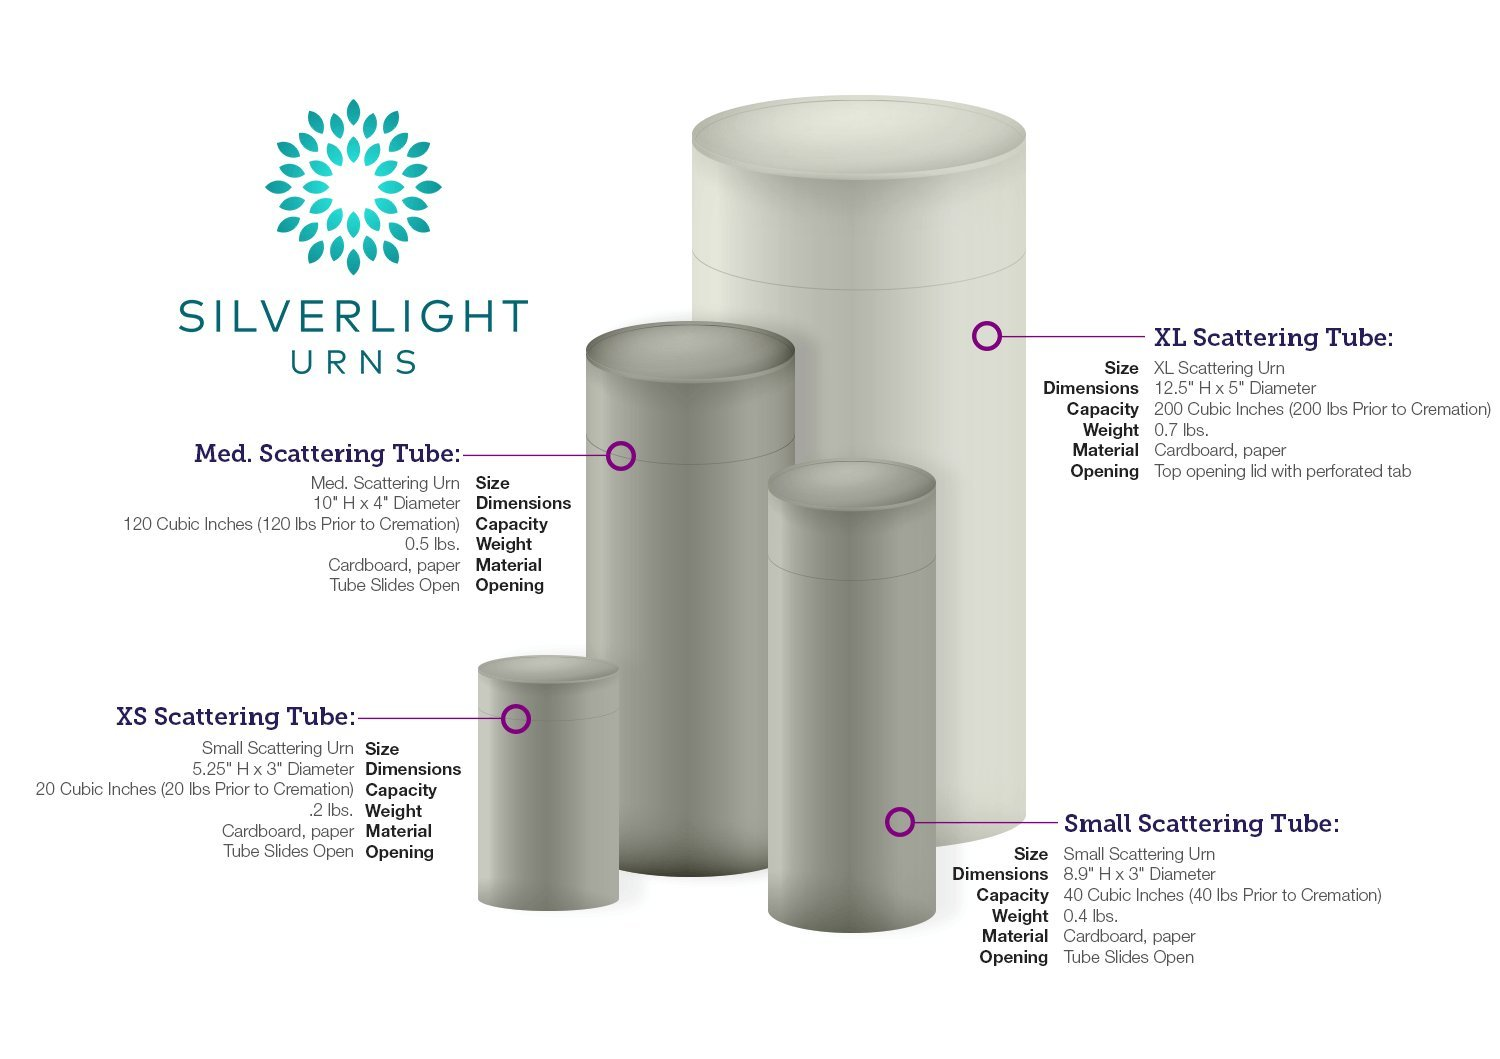 Silverlight Urns Ascending Dove Scattering Tube, Biodegradable Urn for Scattering Ashes, 12 Inches Long, Cardboard and Paper Cremation Urn Passages International EPI-110